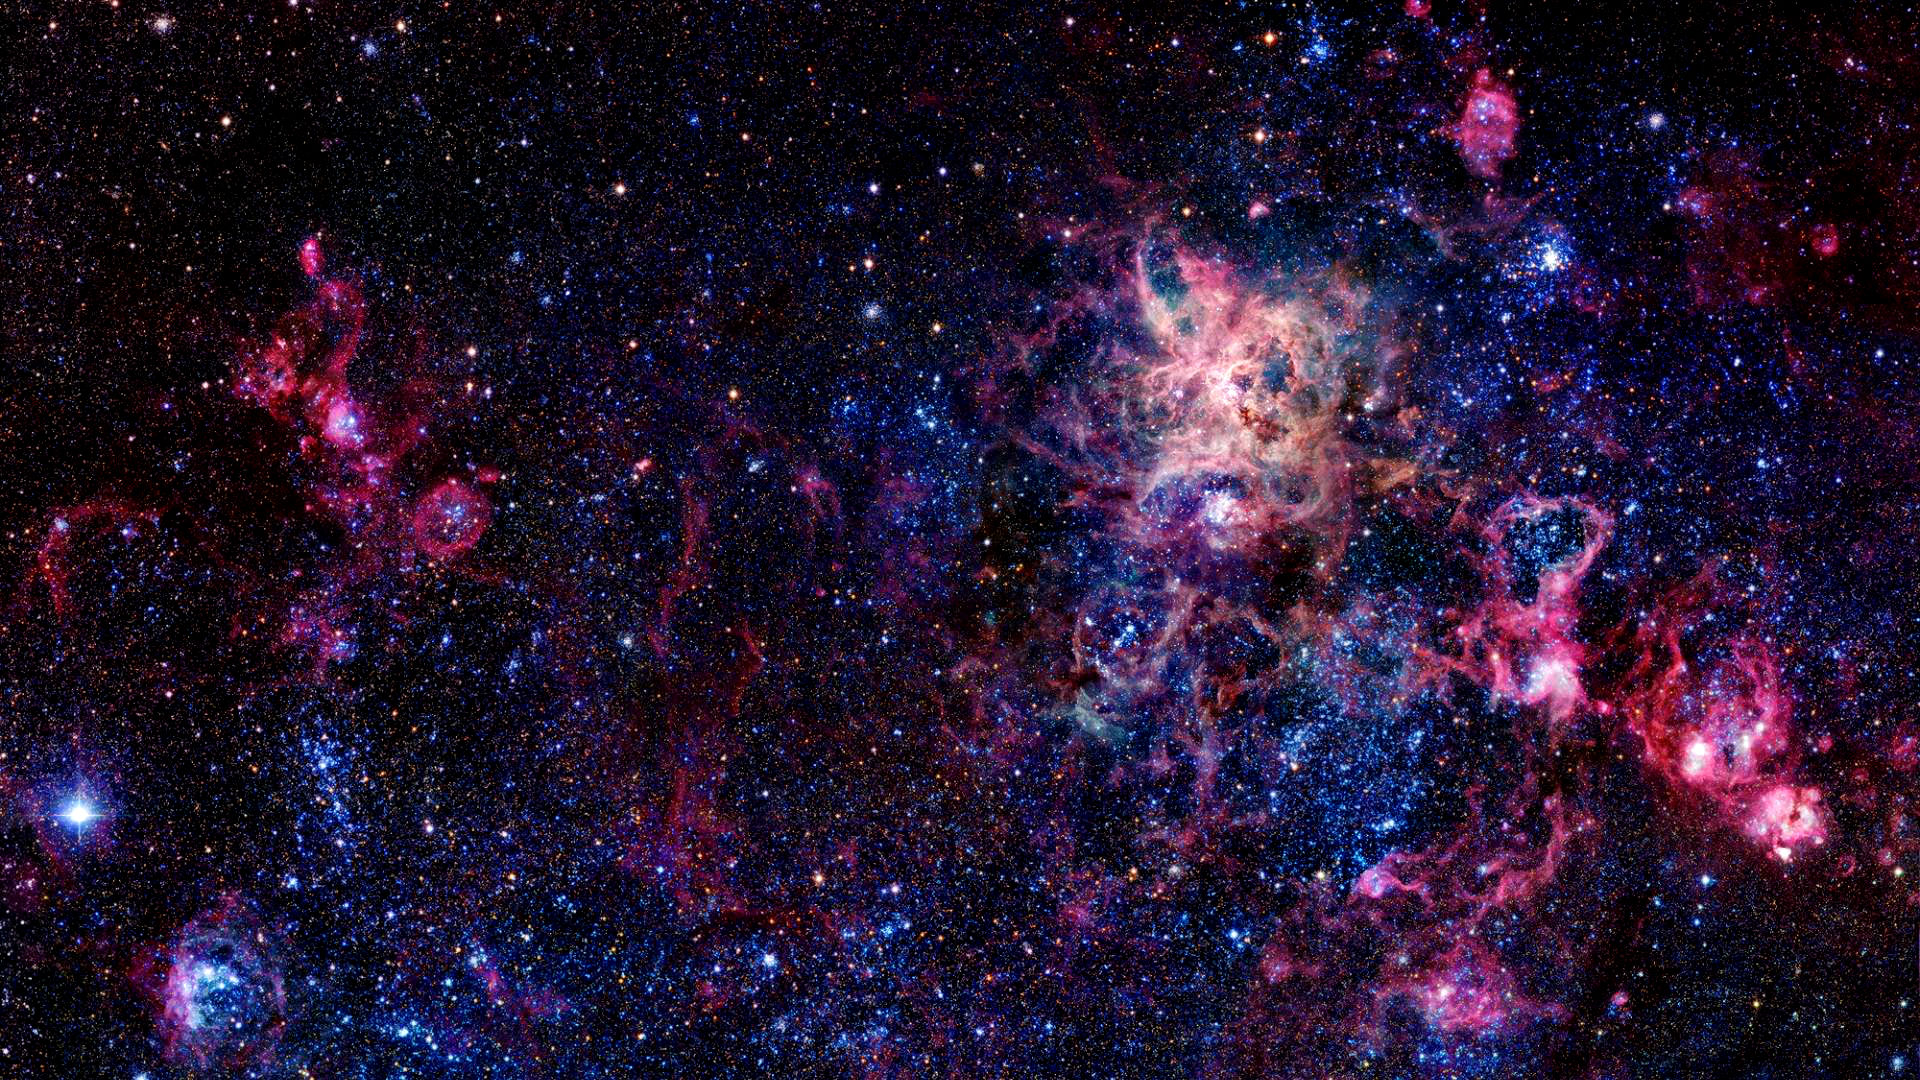 space hd wallpapers backgrounds wallpaper 1920x1080